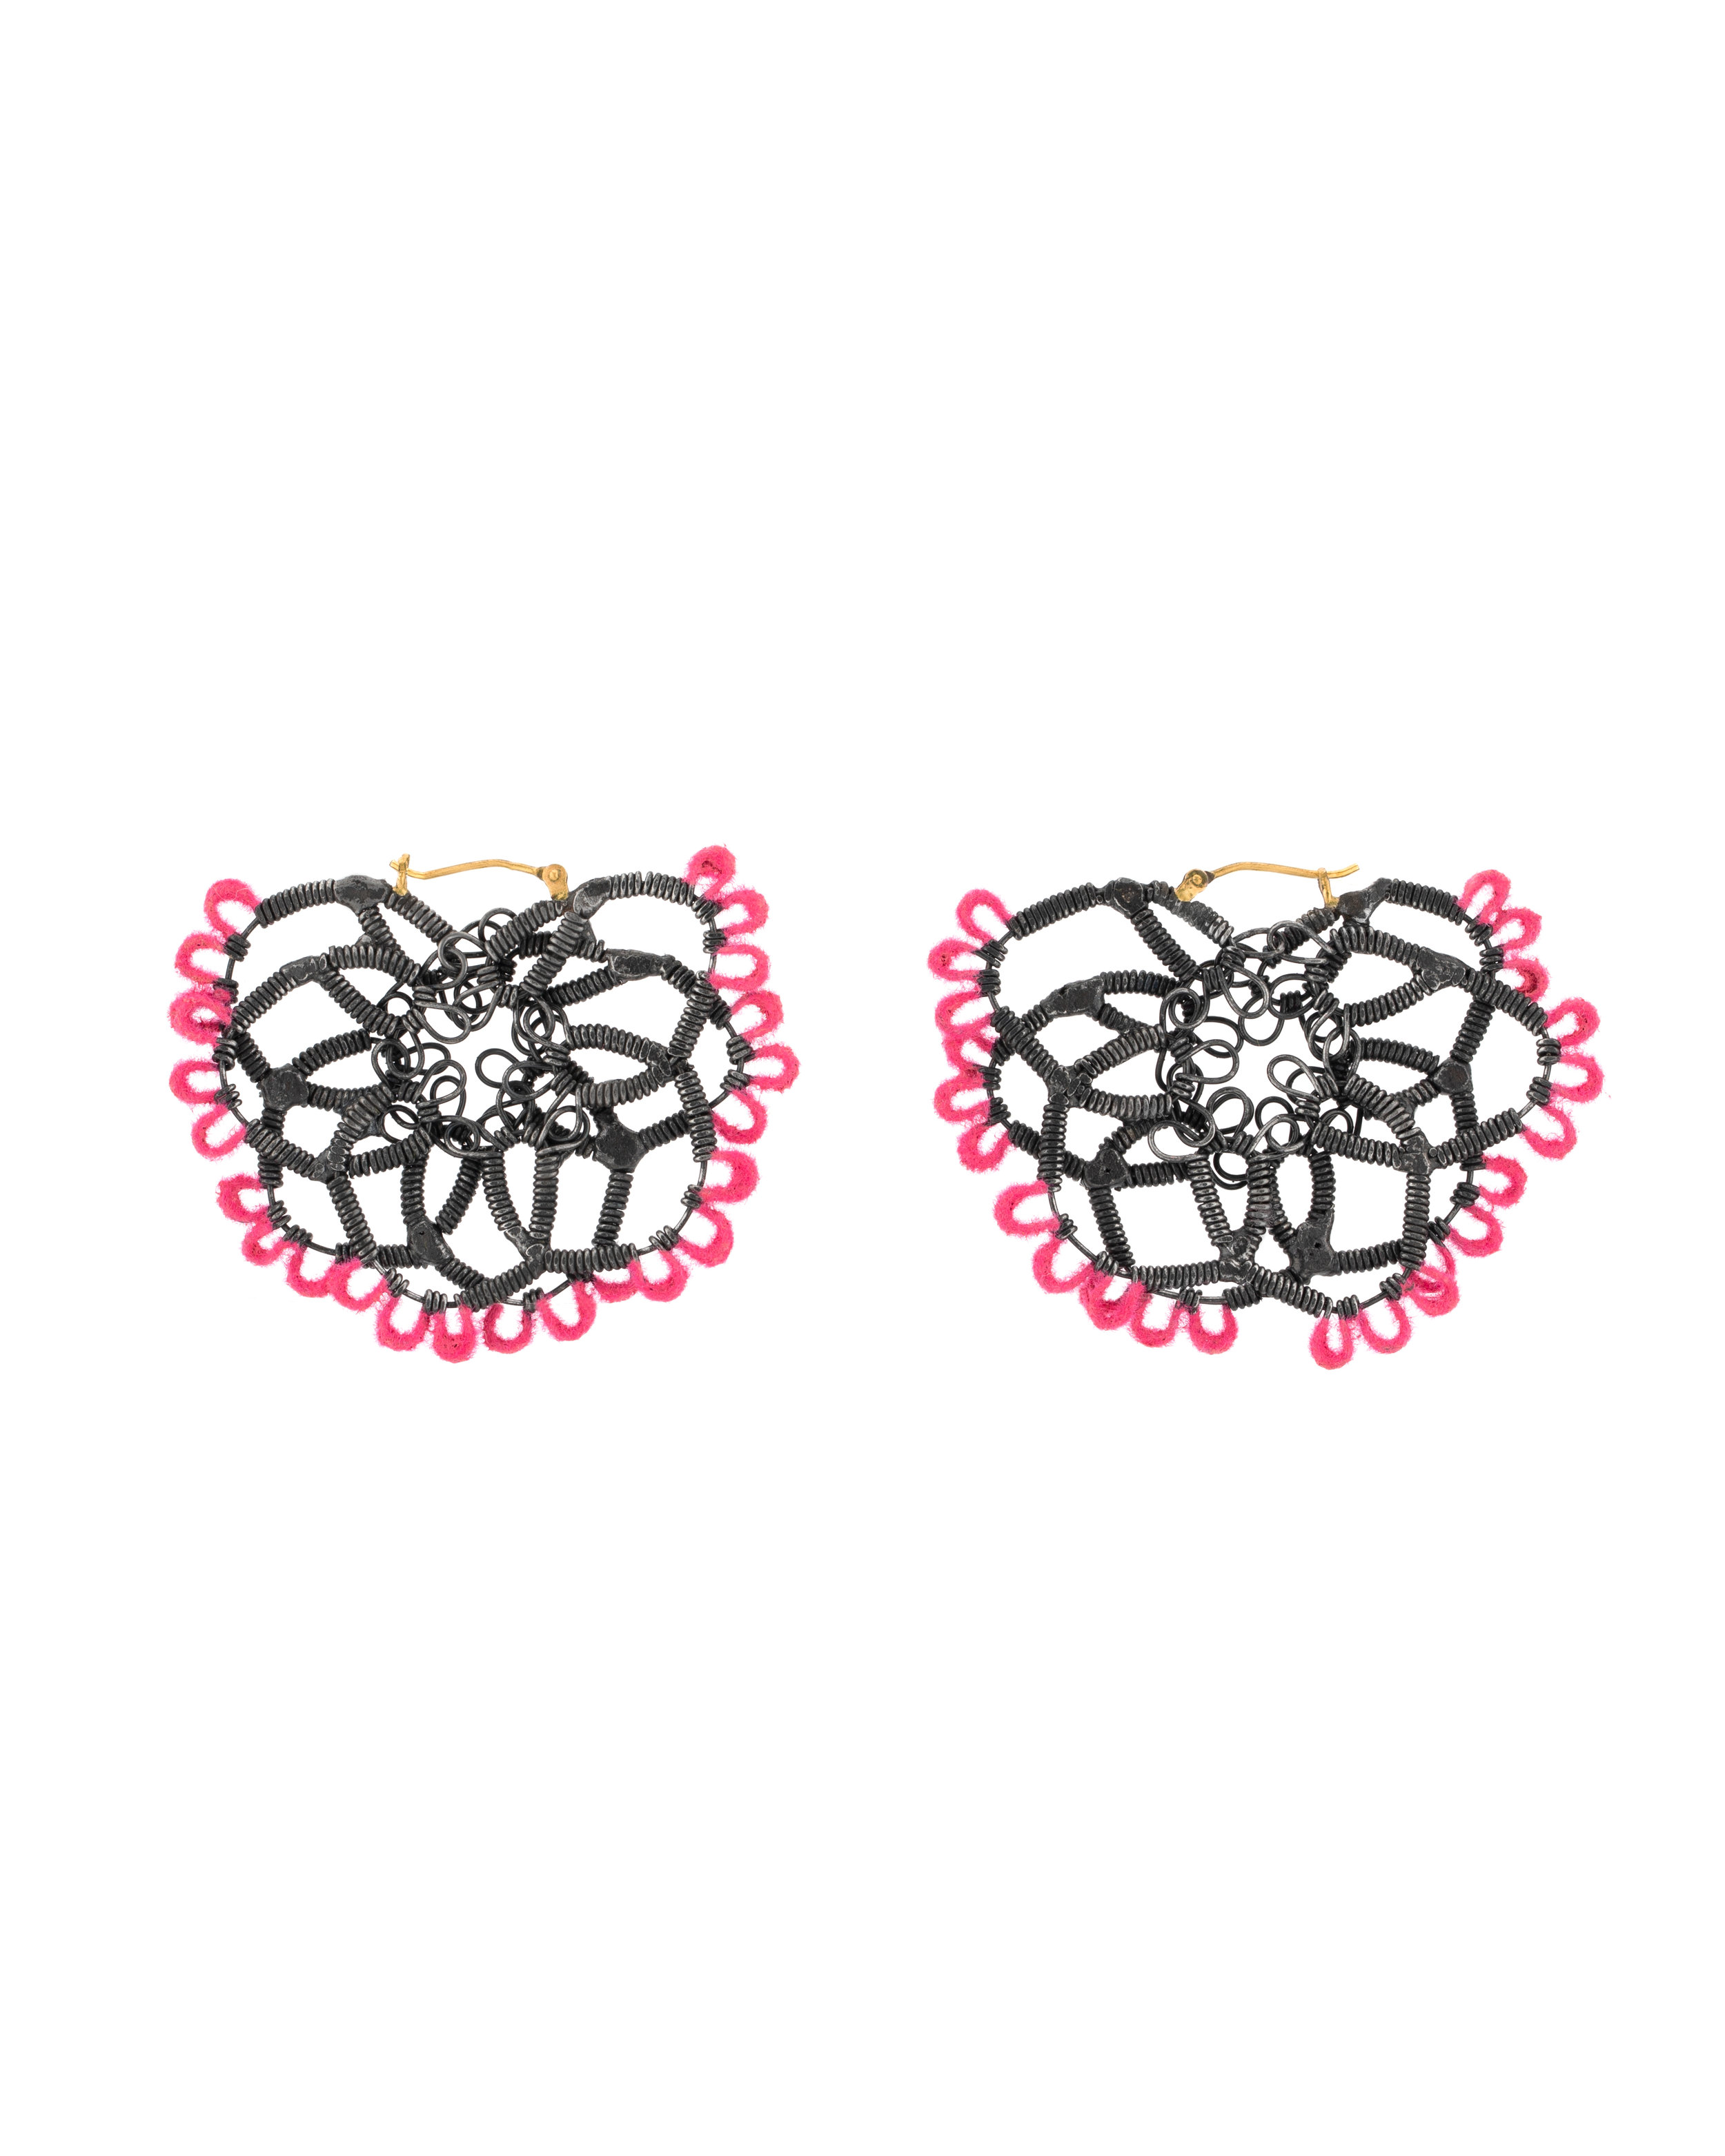 Sarah Holden,  Double Lace Mini Dangles in Pink , Mild steel, velvet flocking, 2018  Photo by Jocelyn Negron